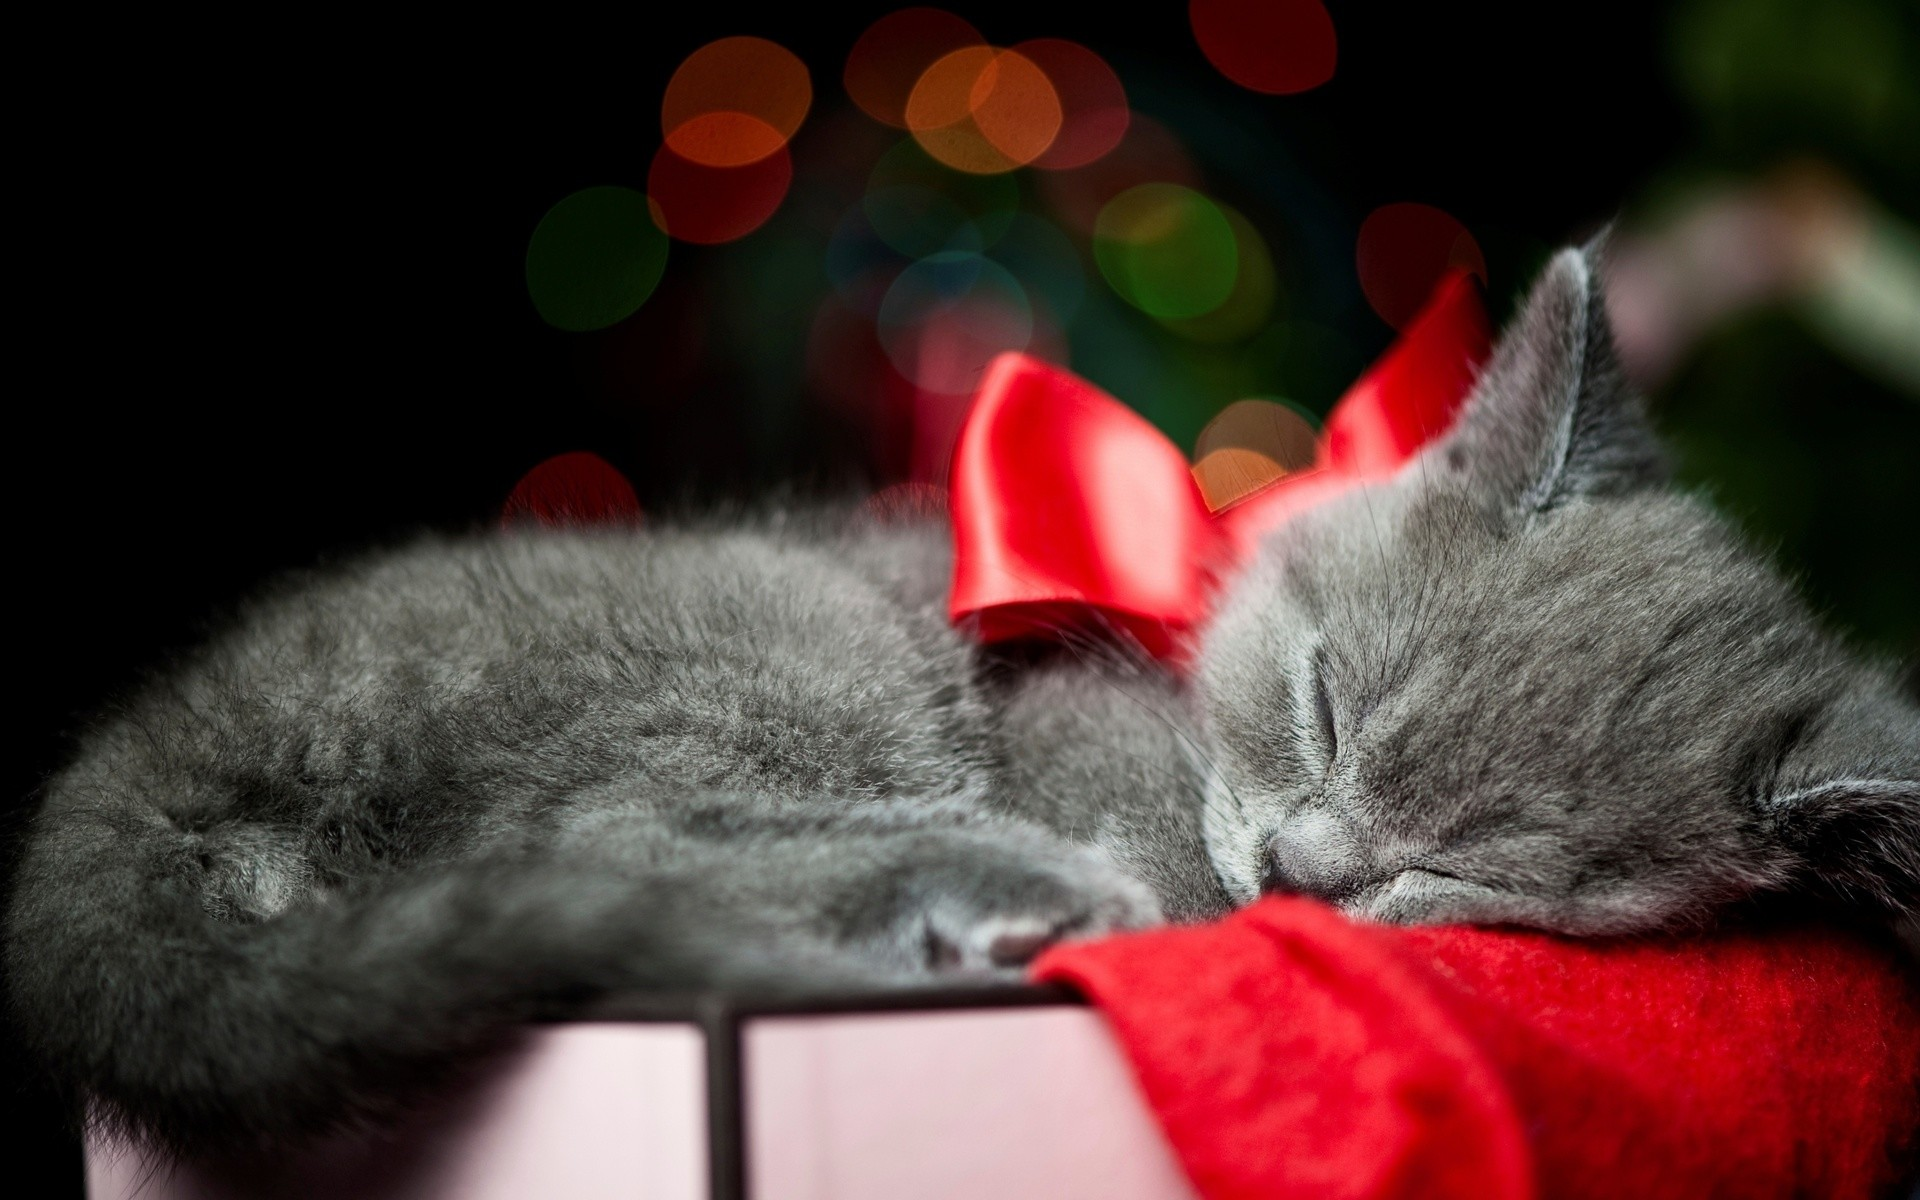 christmas bow red animals cats kittens whiskers sleep cute wallpaper .